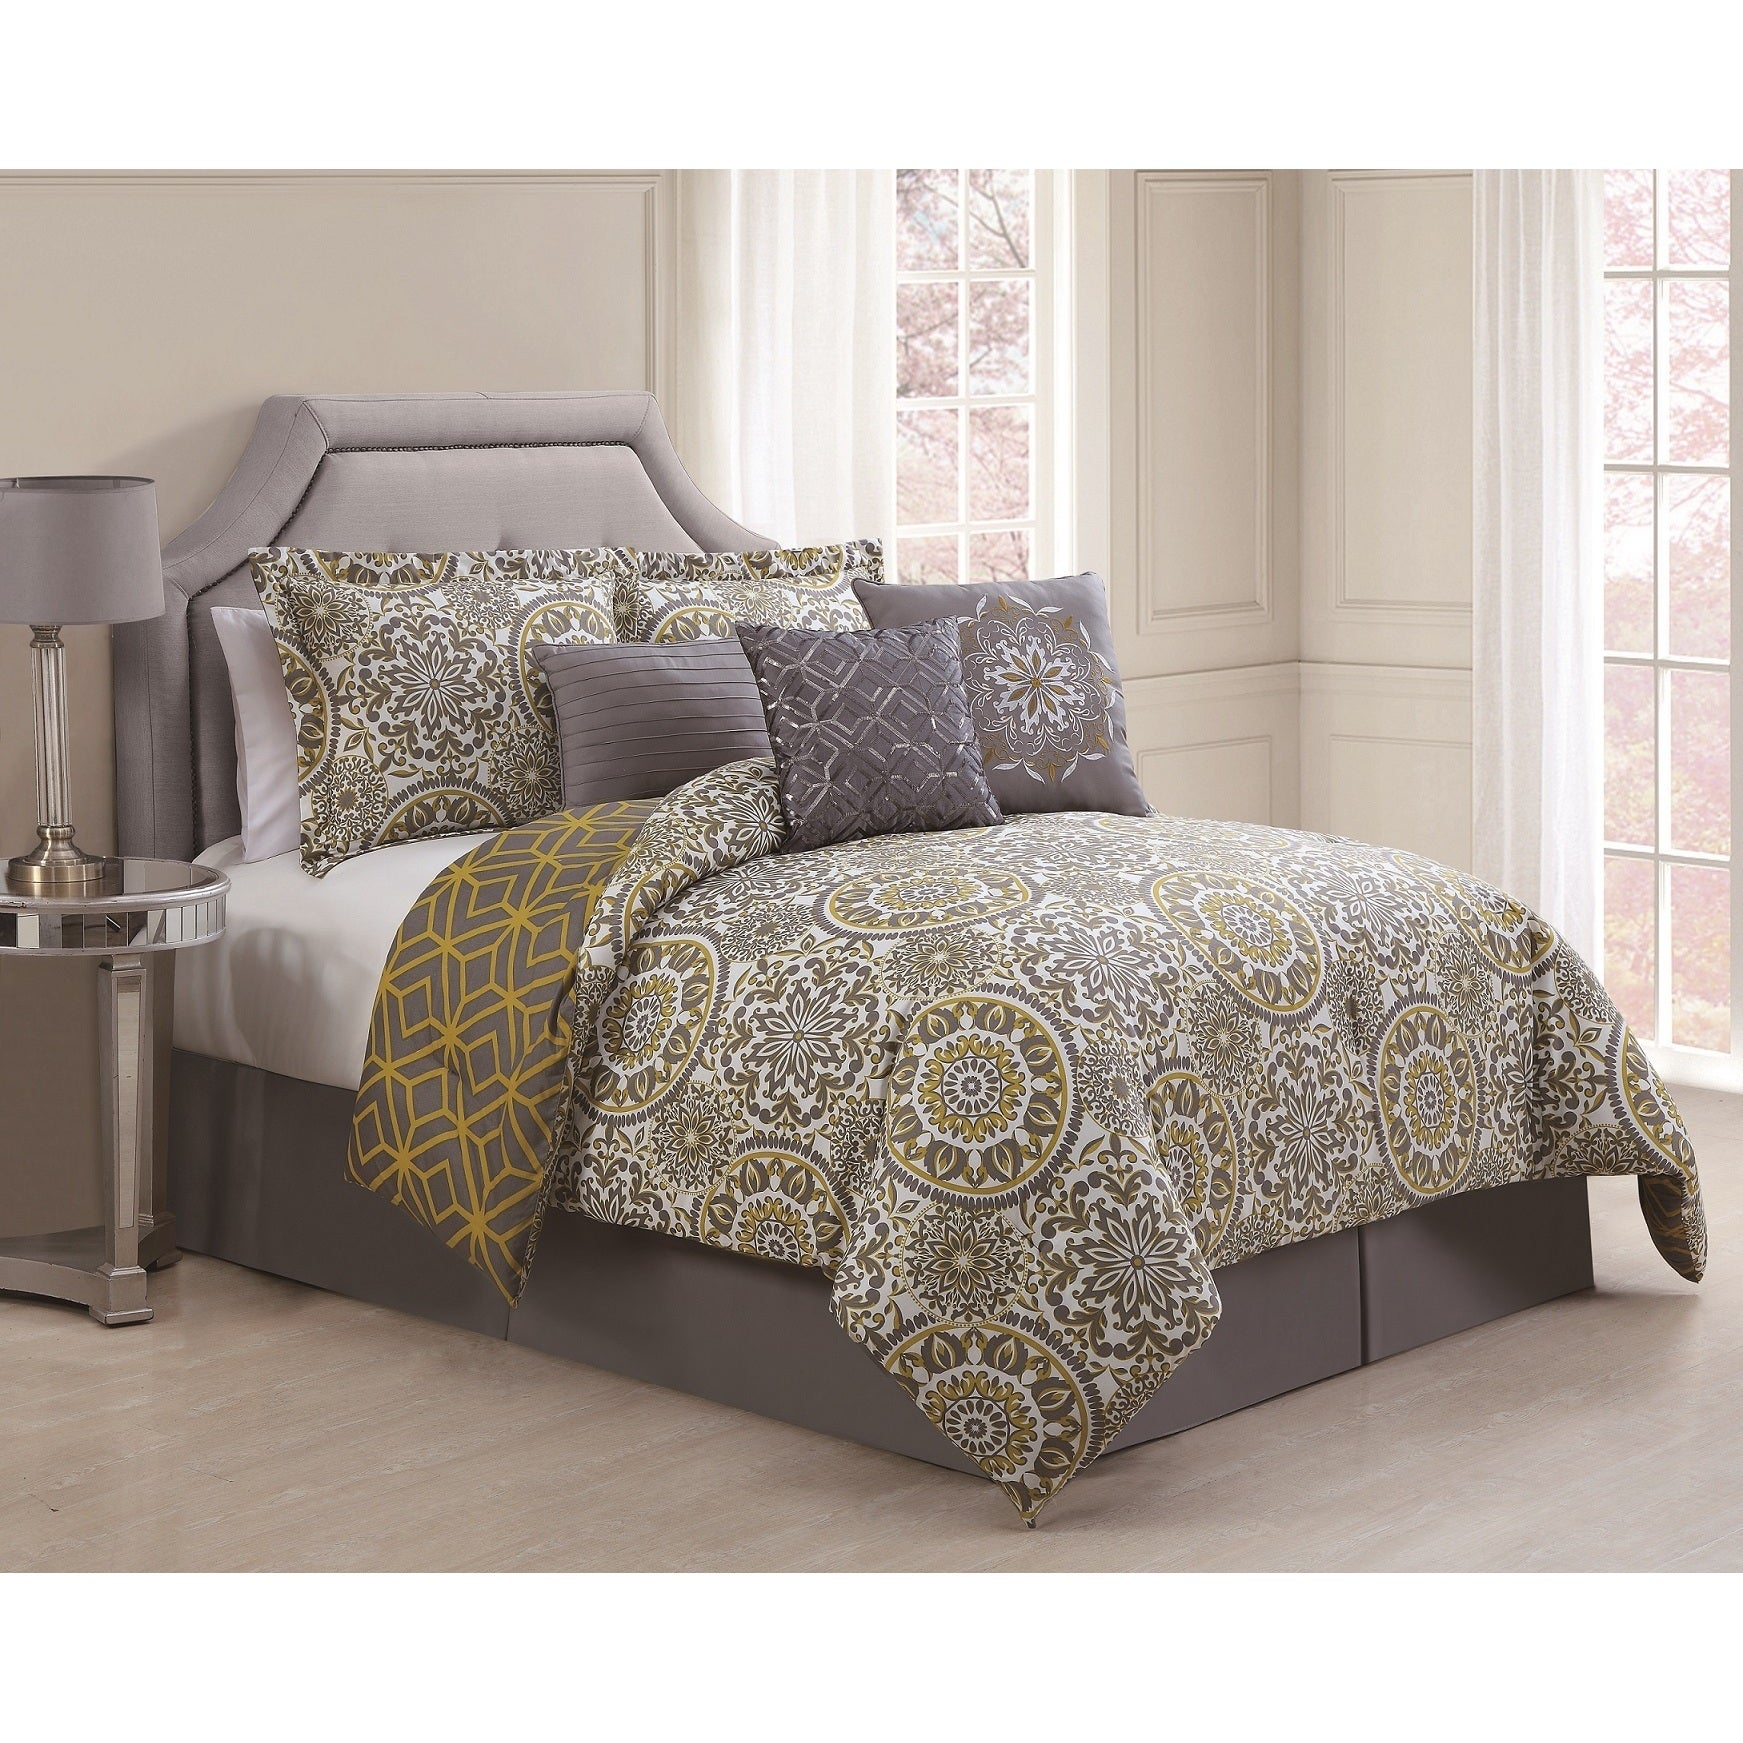 sets home gray yellow grey design queen comforter ideas and